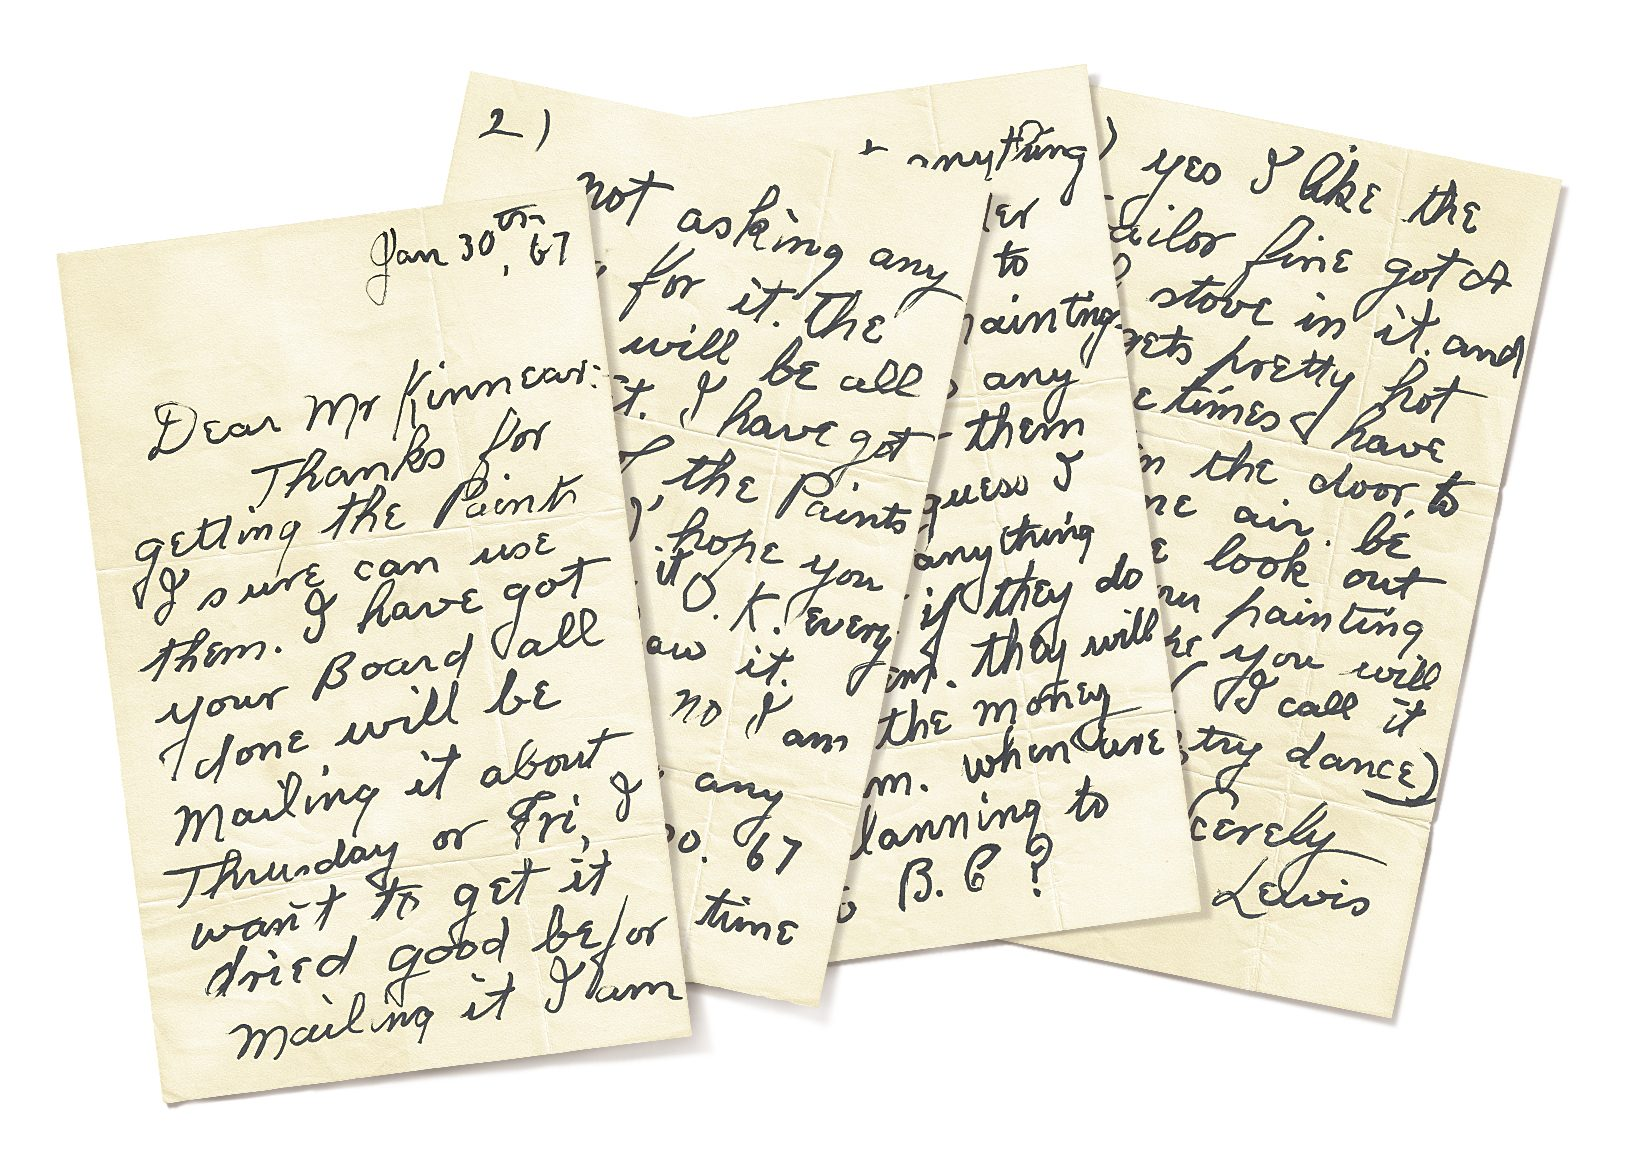 One of the many letters Lewis wrote to John H. Kinnear